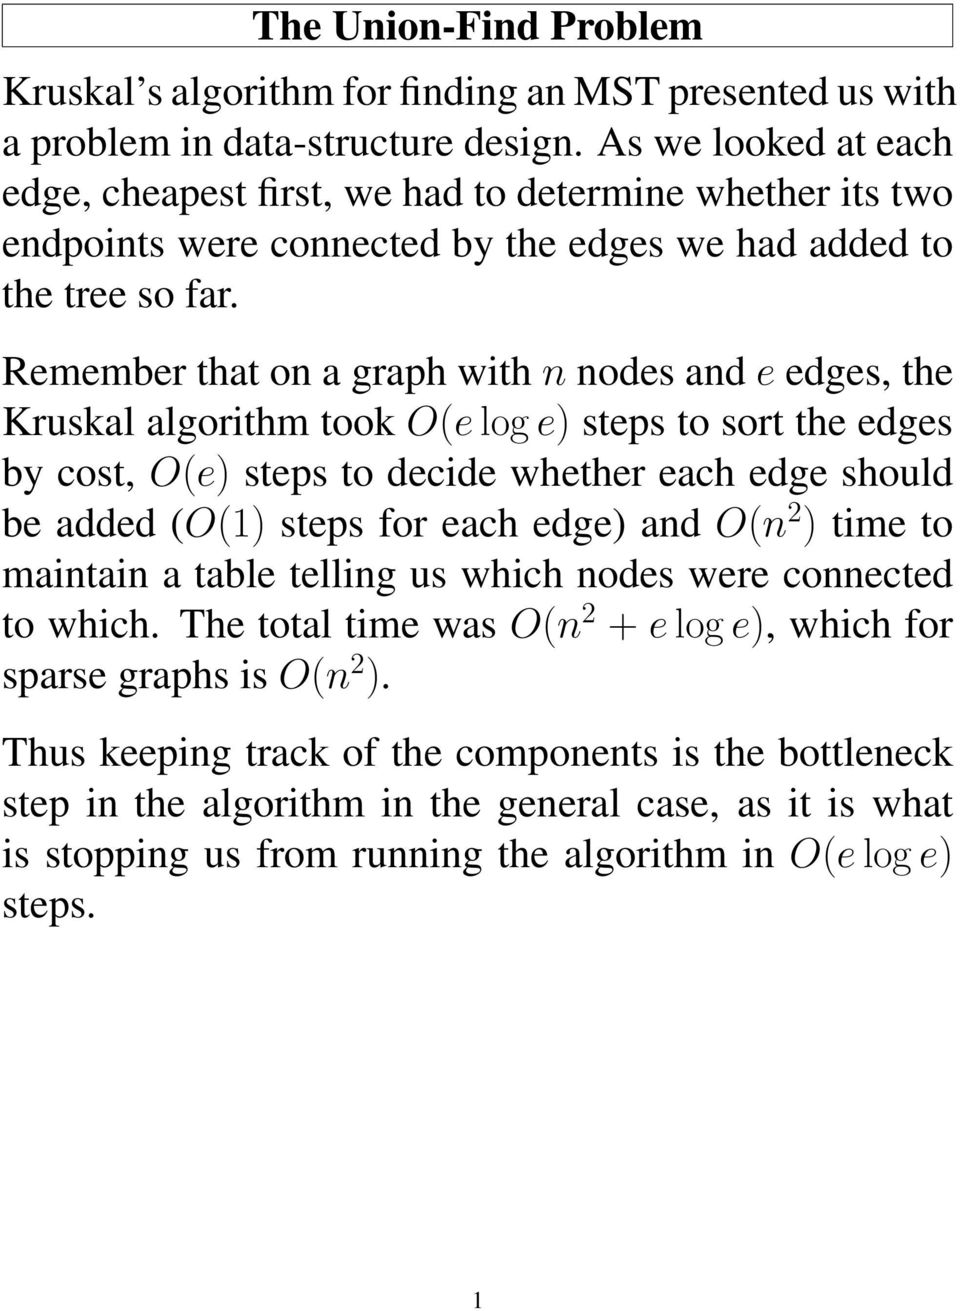 Remember that on a graph with n nodes and e edges, the Kruskal algorithm took O(e log e) steps to sort the edges by cost, O(e) steps to decide whether each edge should be added (O(1) steps for each